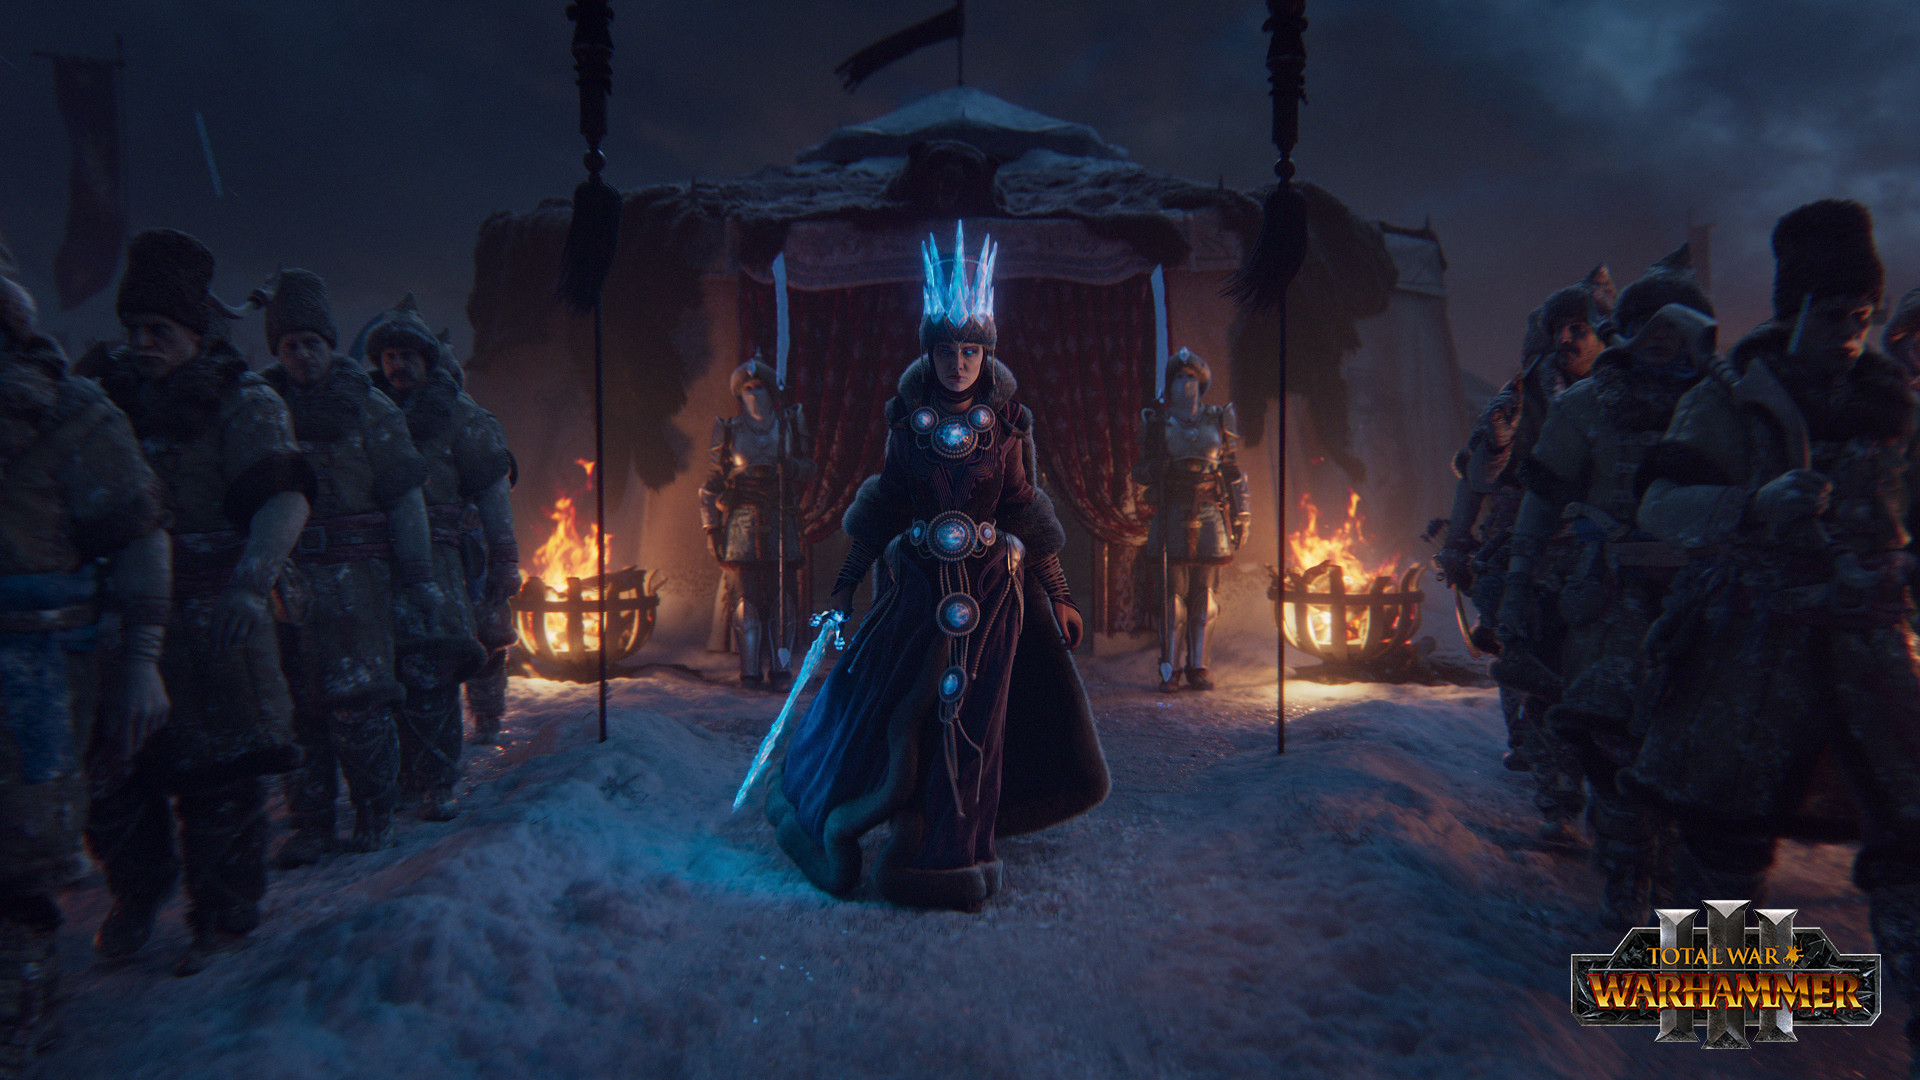 Media asset in full size related to 3dfxzone.it news item entitled as follows: Creative Assembly e Sega annunciano Total War: Warhammer III con un trailer | Image Name: news31659_Total-War-WARHAMMER-III_1.jpg